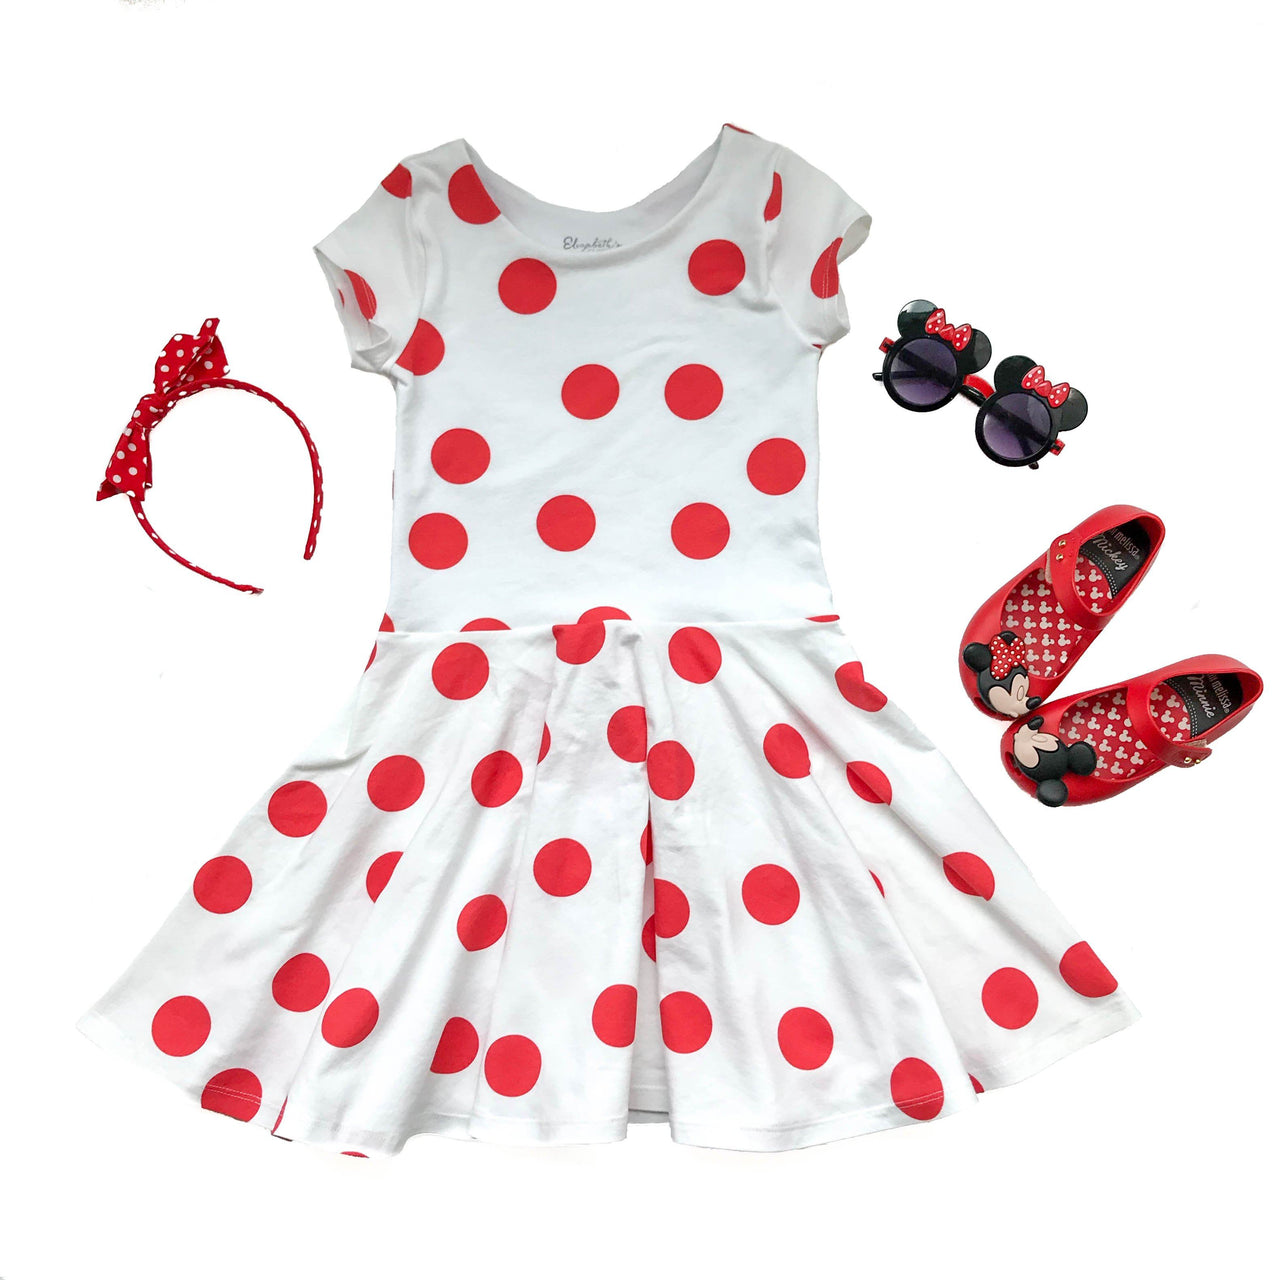 Red and White Polka Dot Twirl Dress - Elizabeth's Closet